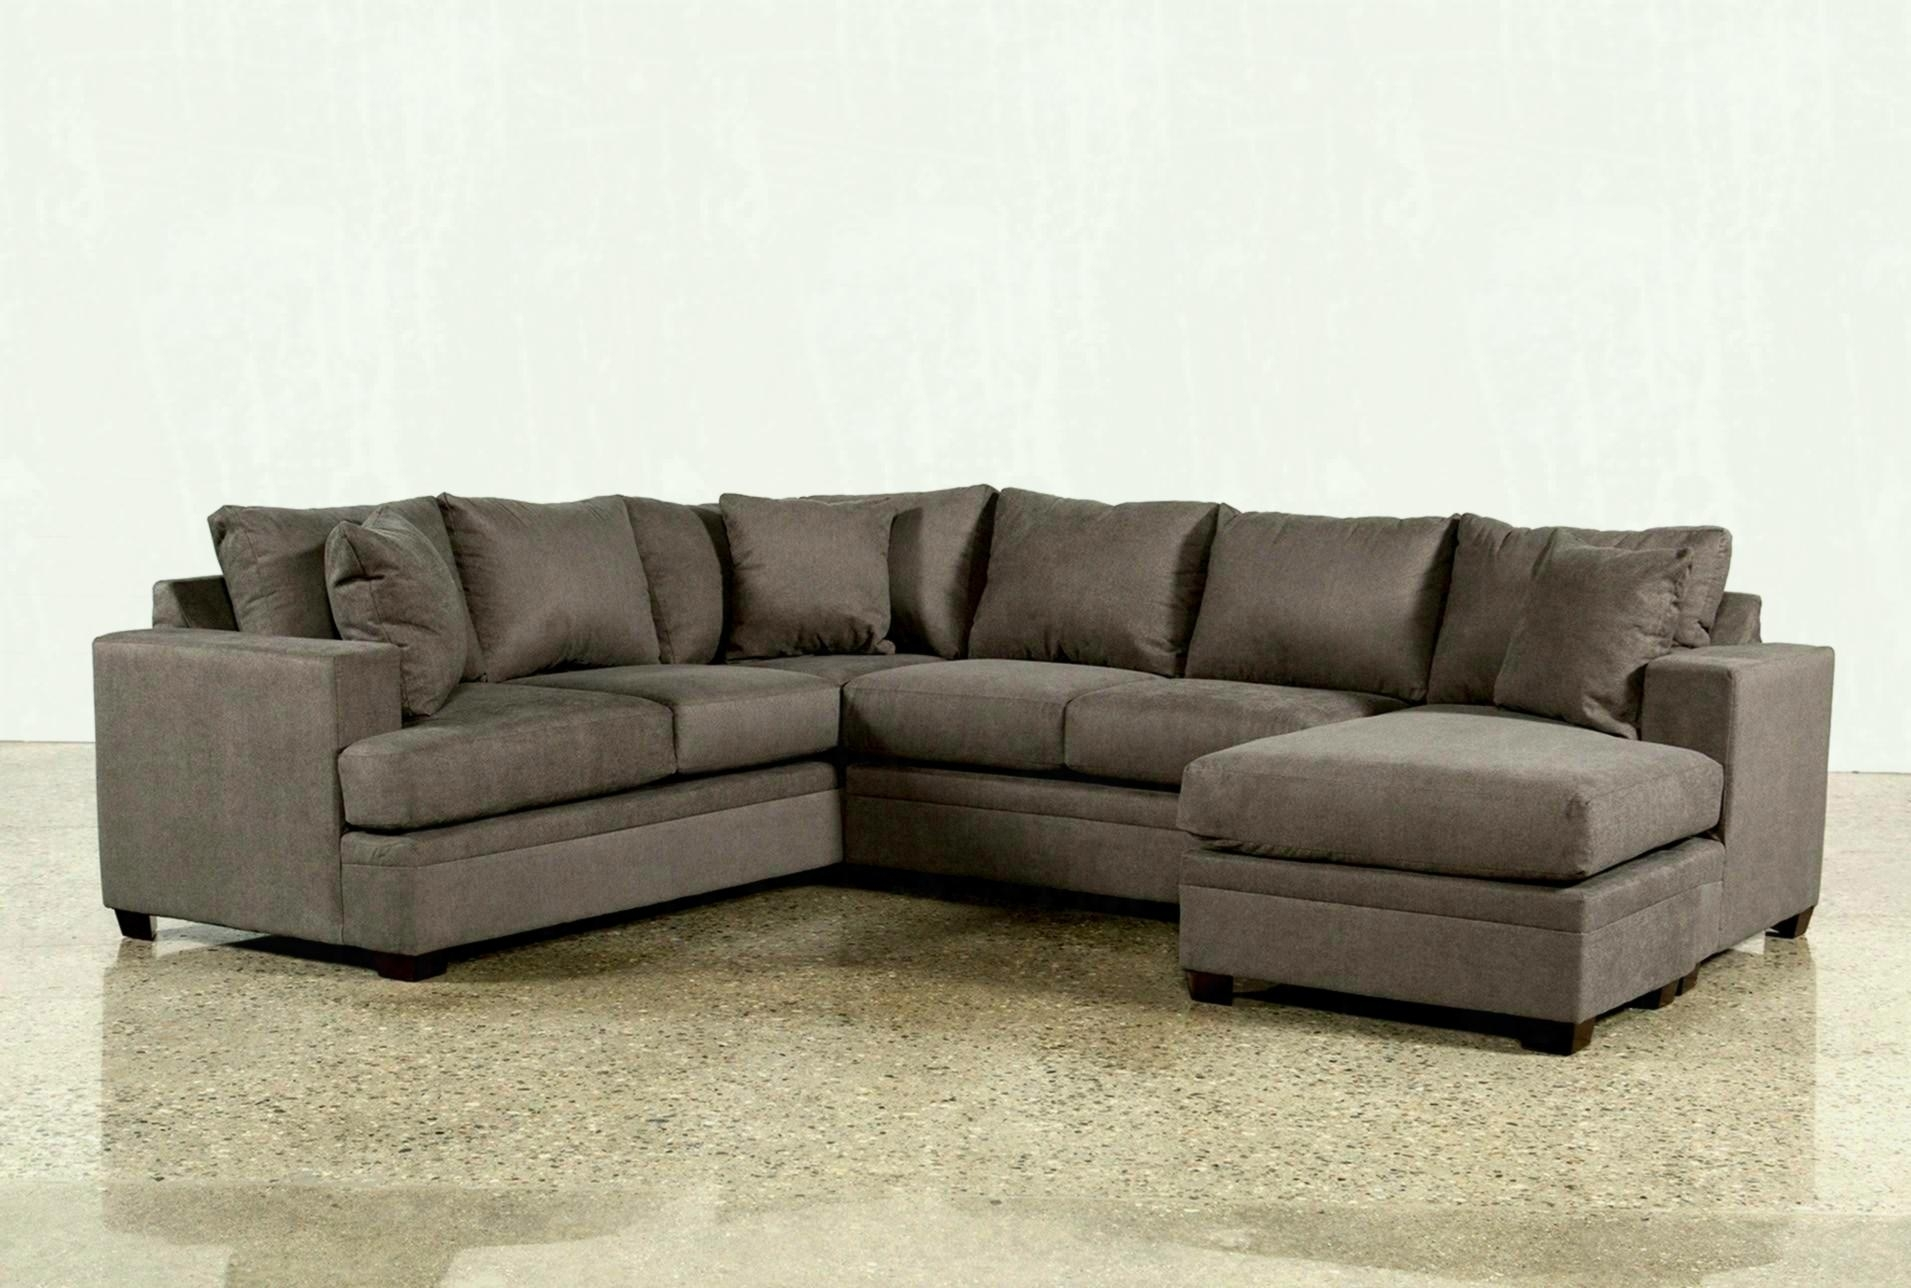 Added To Cart Kerri Piece Sectional W Raf Chaise Living Spaces pertaining to Aquarius Light Grey 2 Piece Sectionals With Laf Chaise (Image 4 of 30)